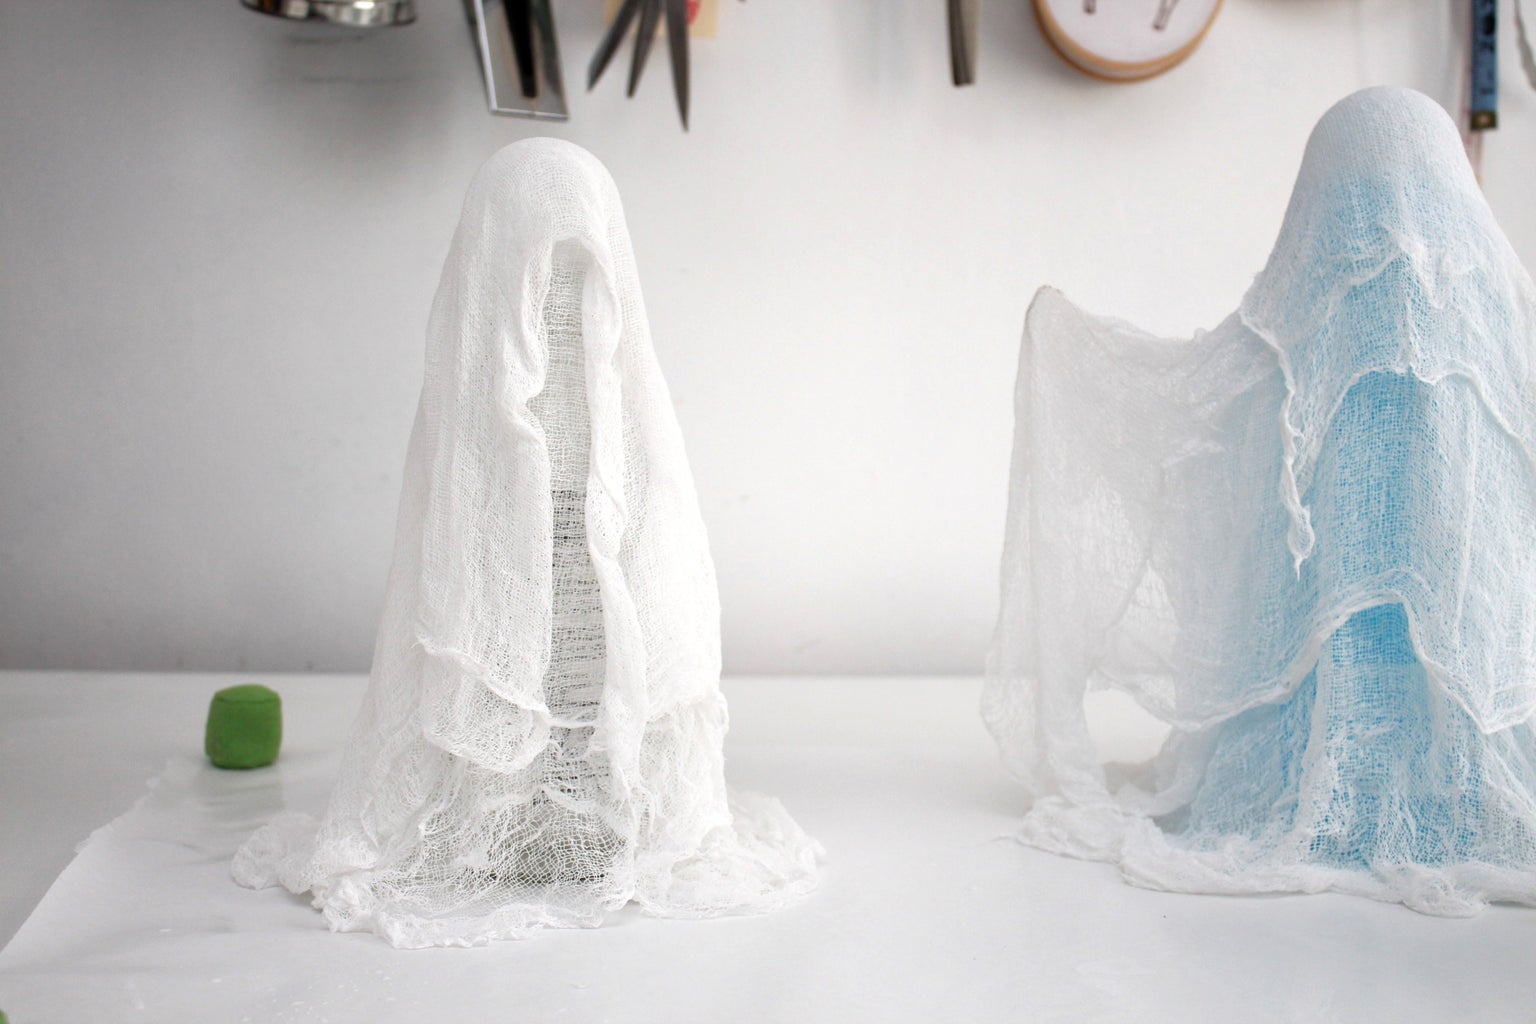 Start Draping the Cheesecloth